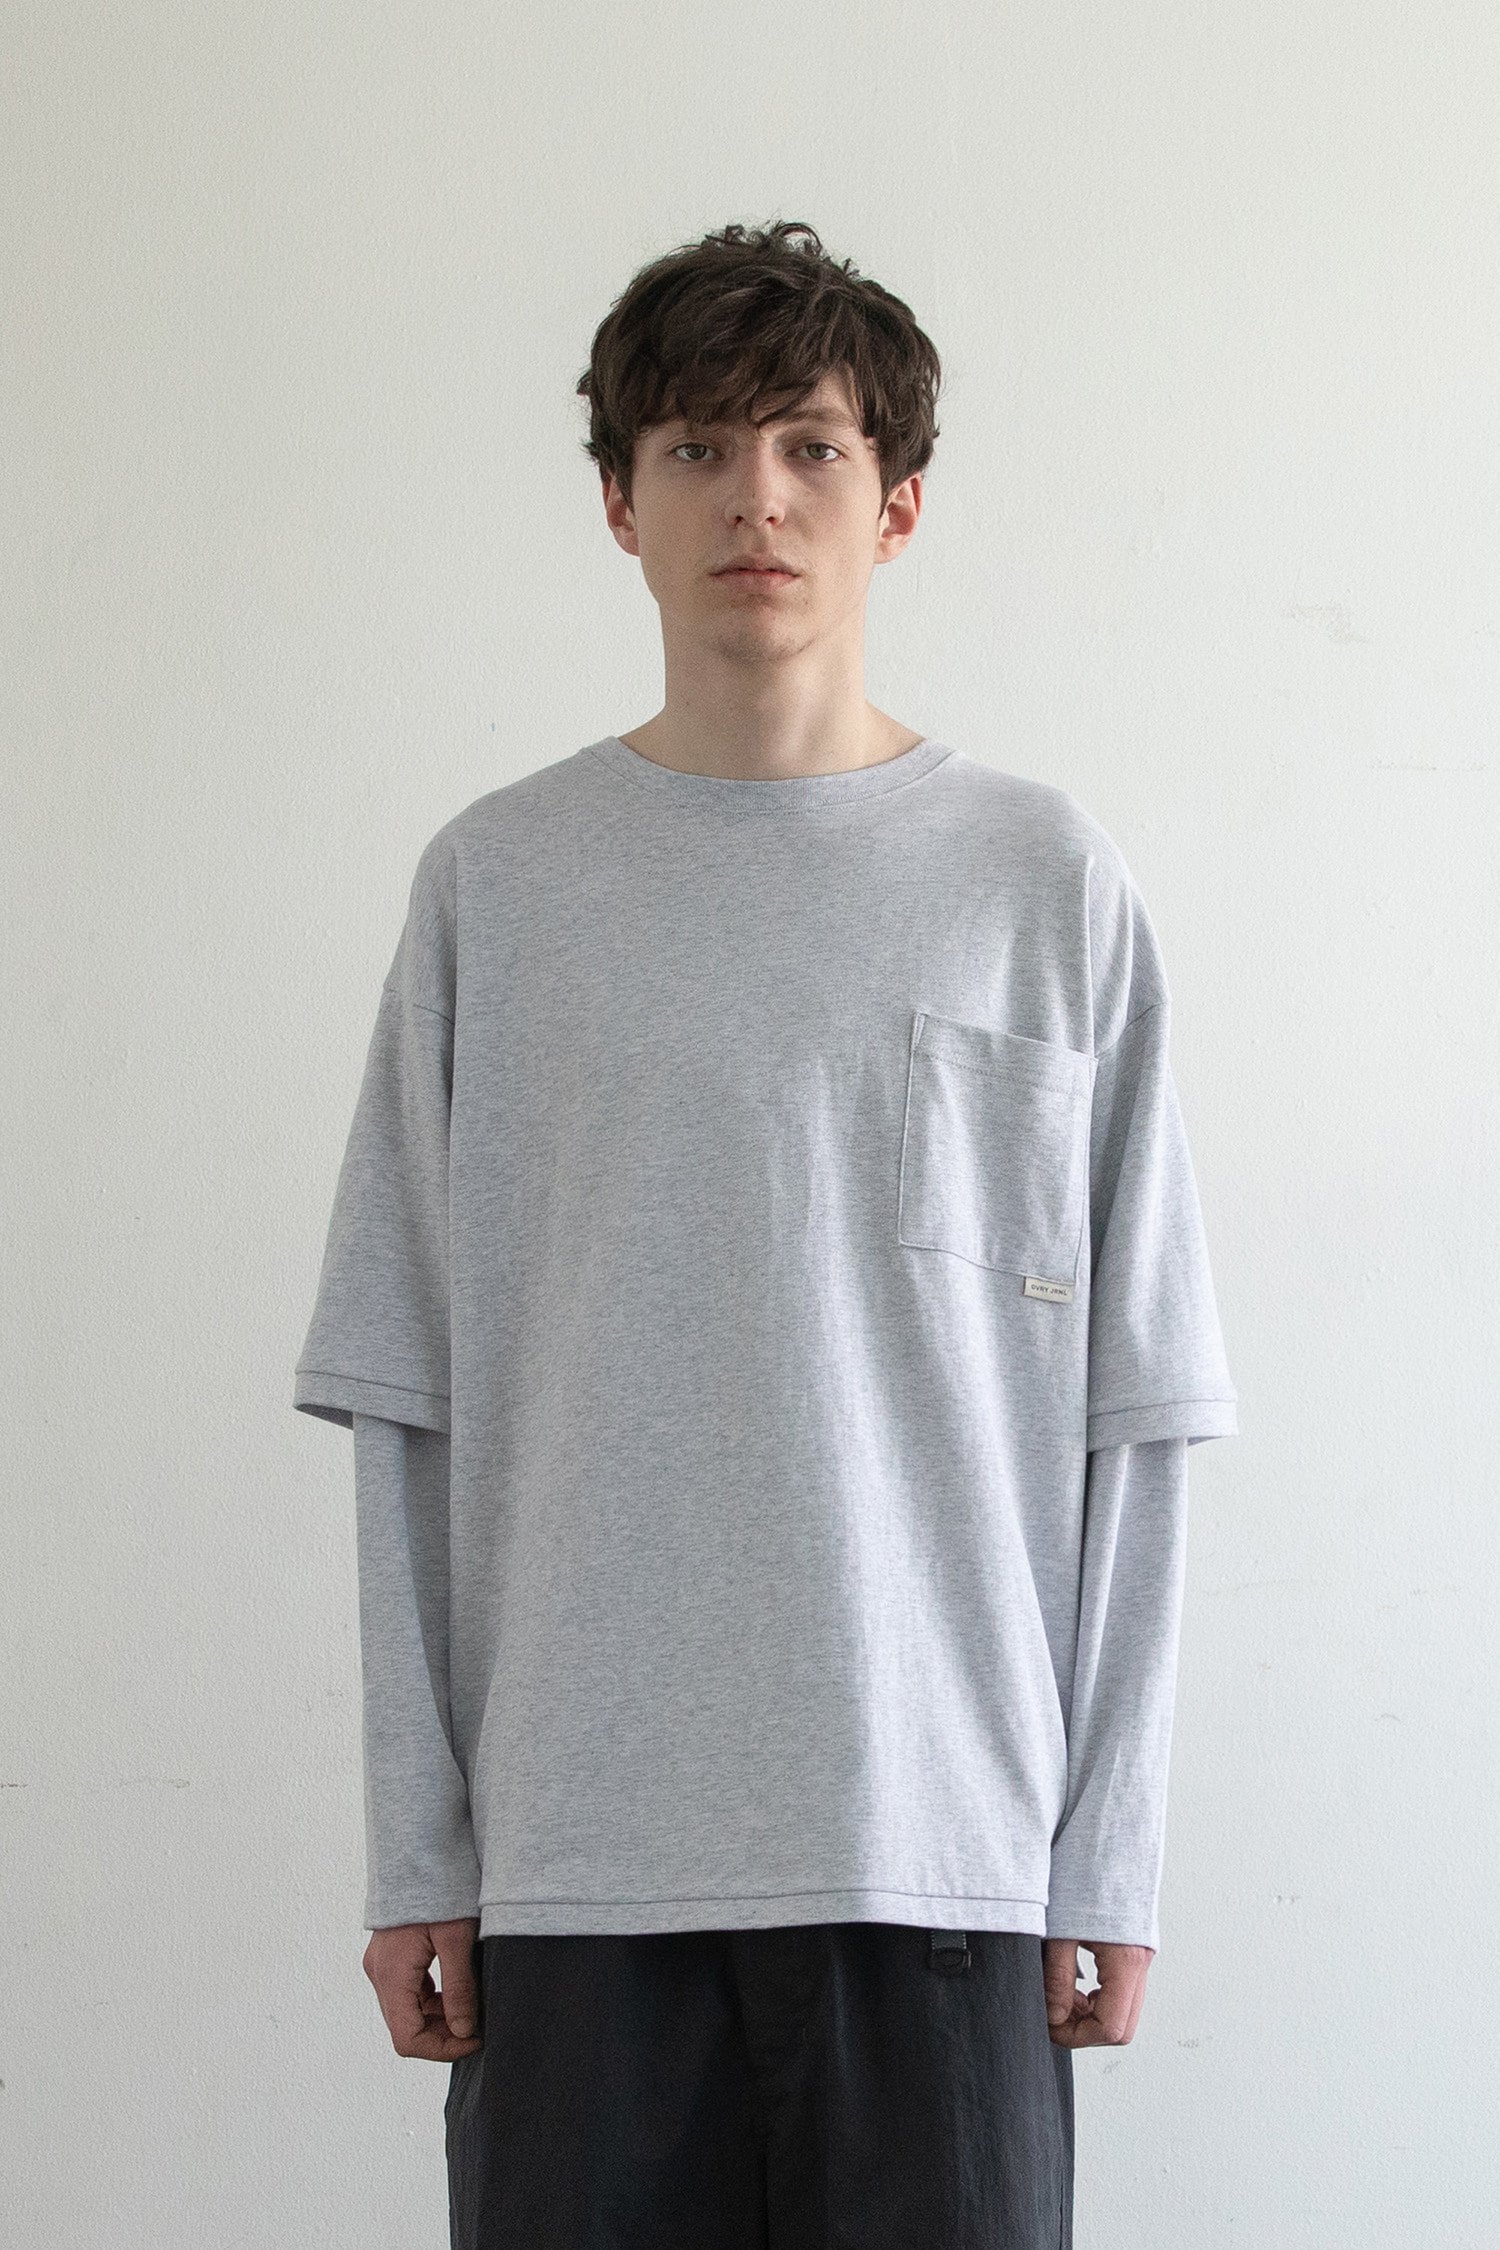 Sk8er Layered T (Heather Gray)